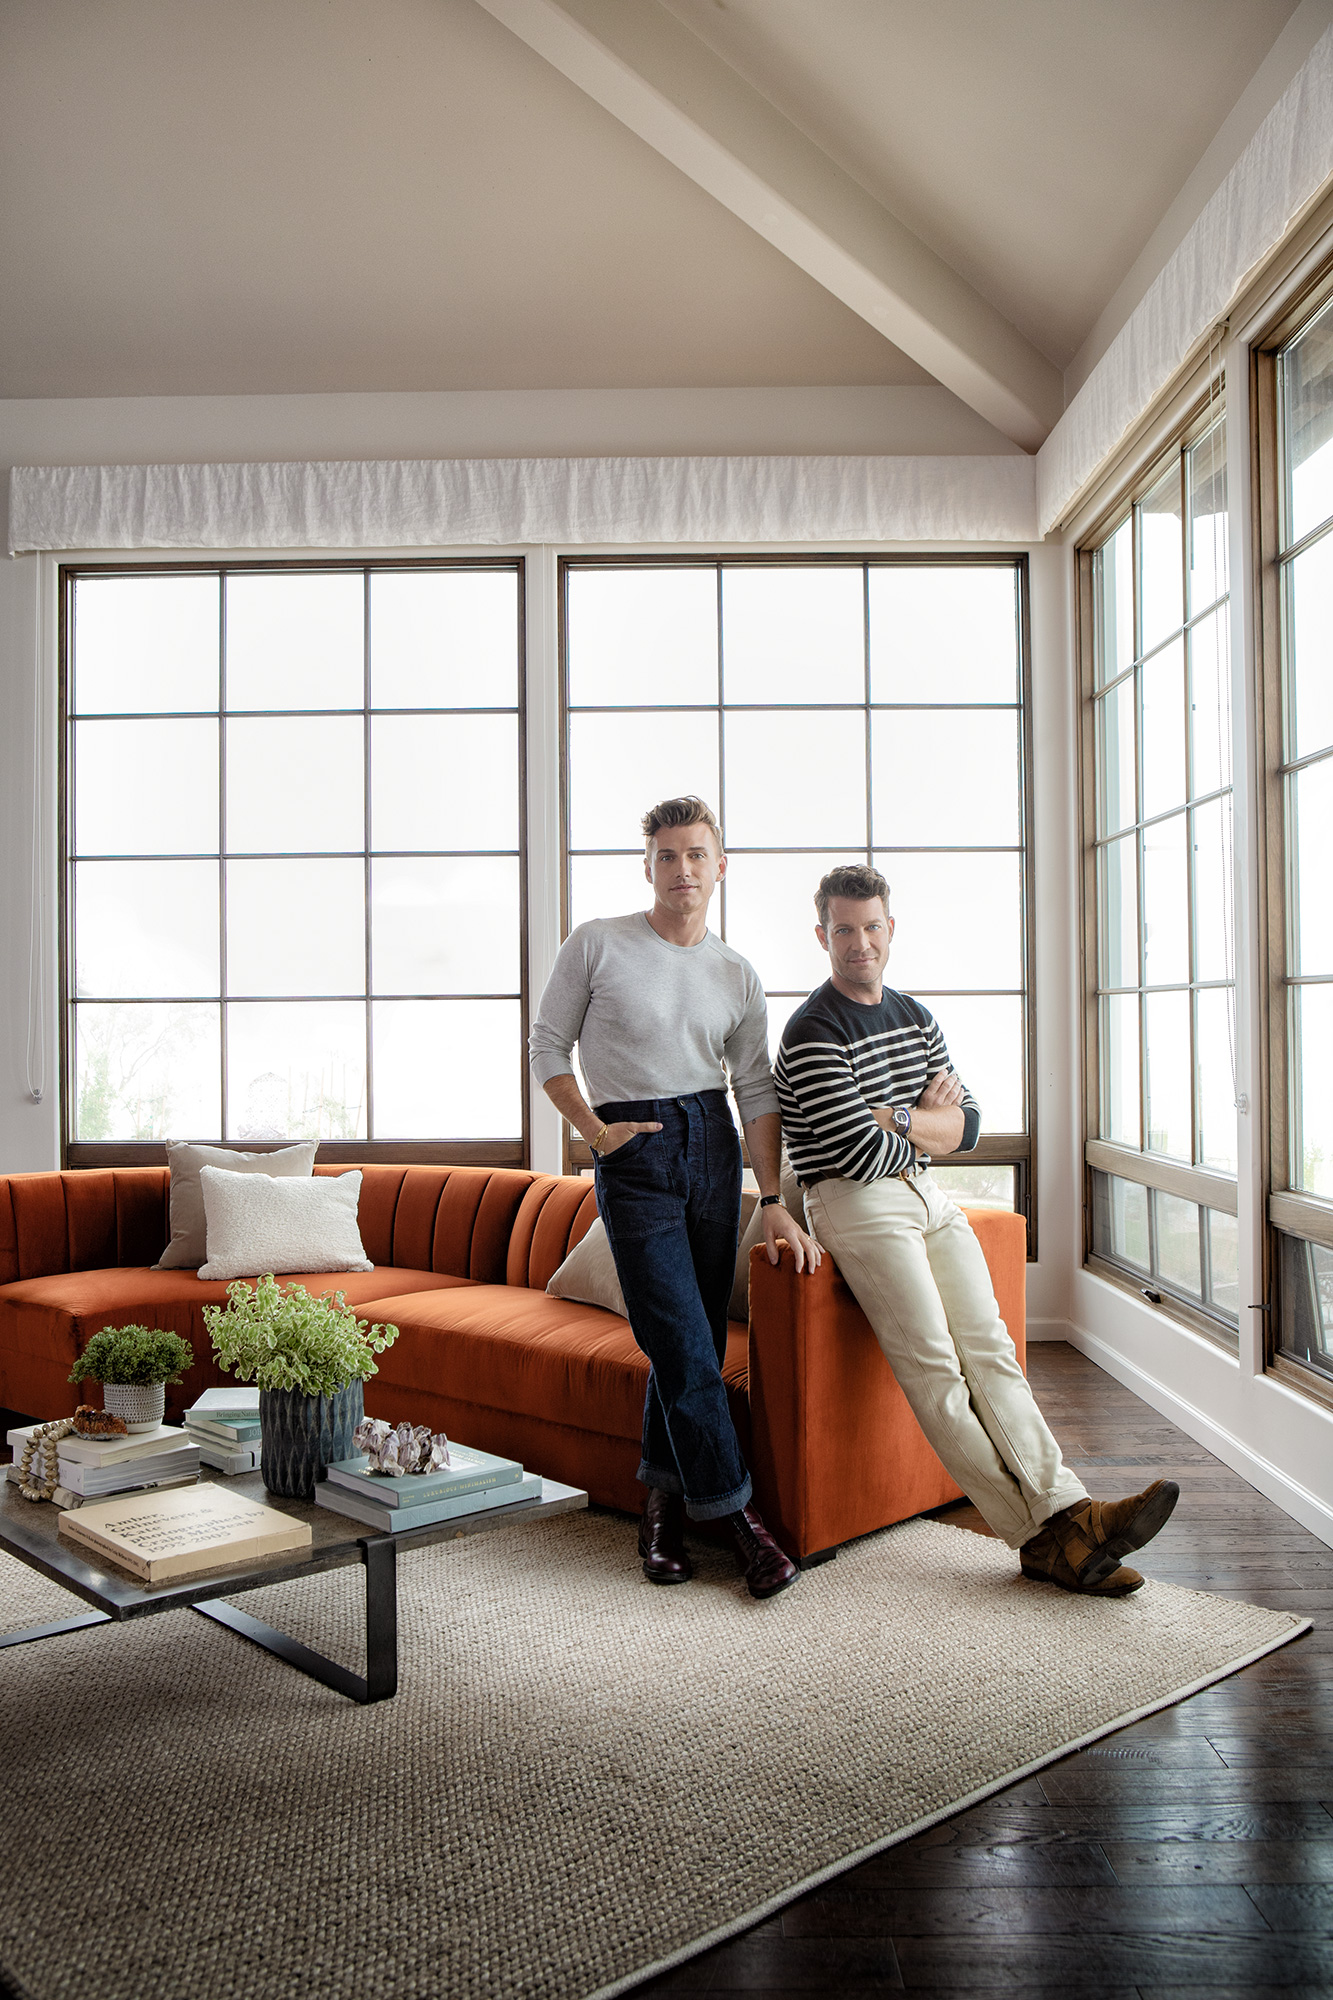 hot cane coffee table nate berkus jeremiah brent living spaces minsmere accent and debut furniture line inspired their own home lucite console farm end tables room essentials